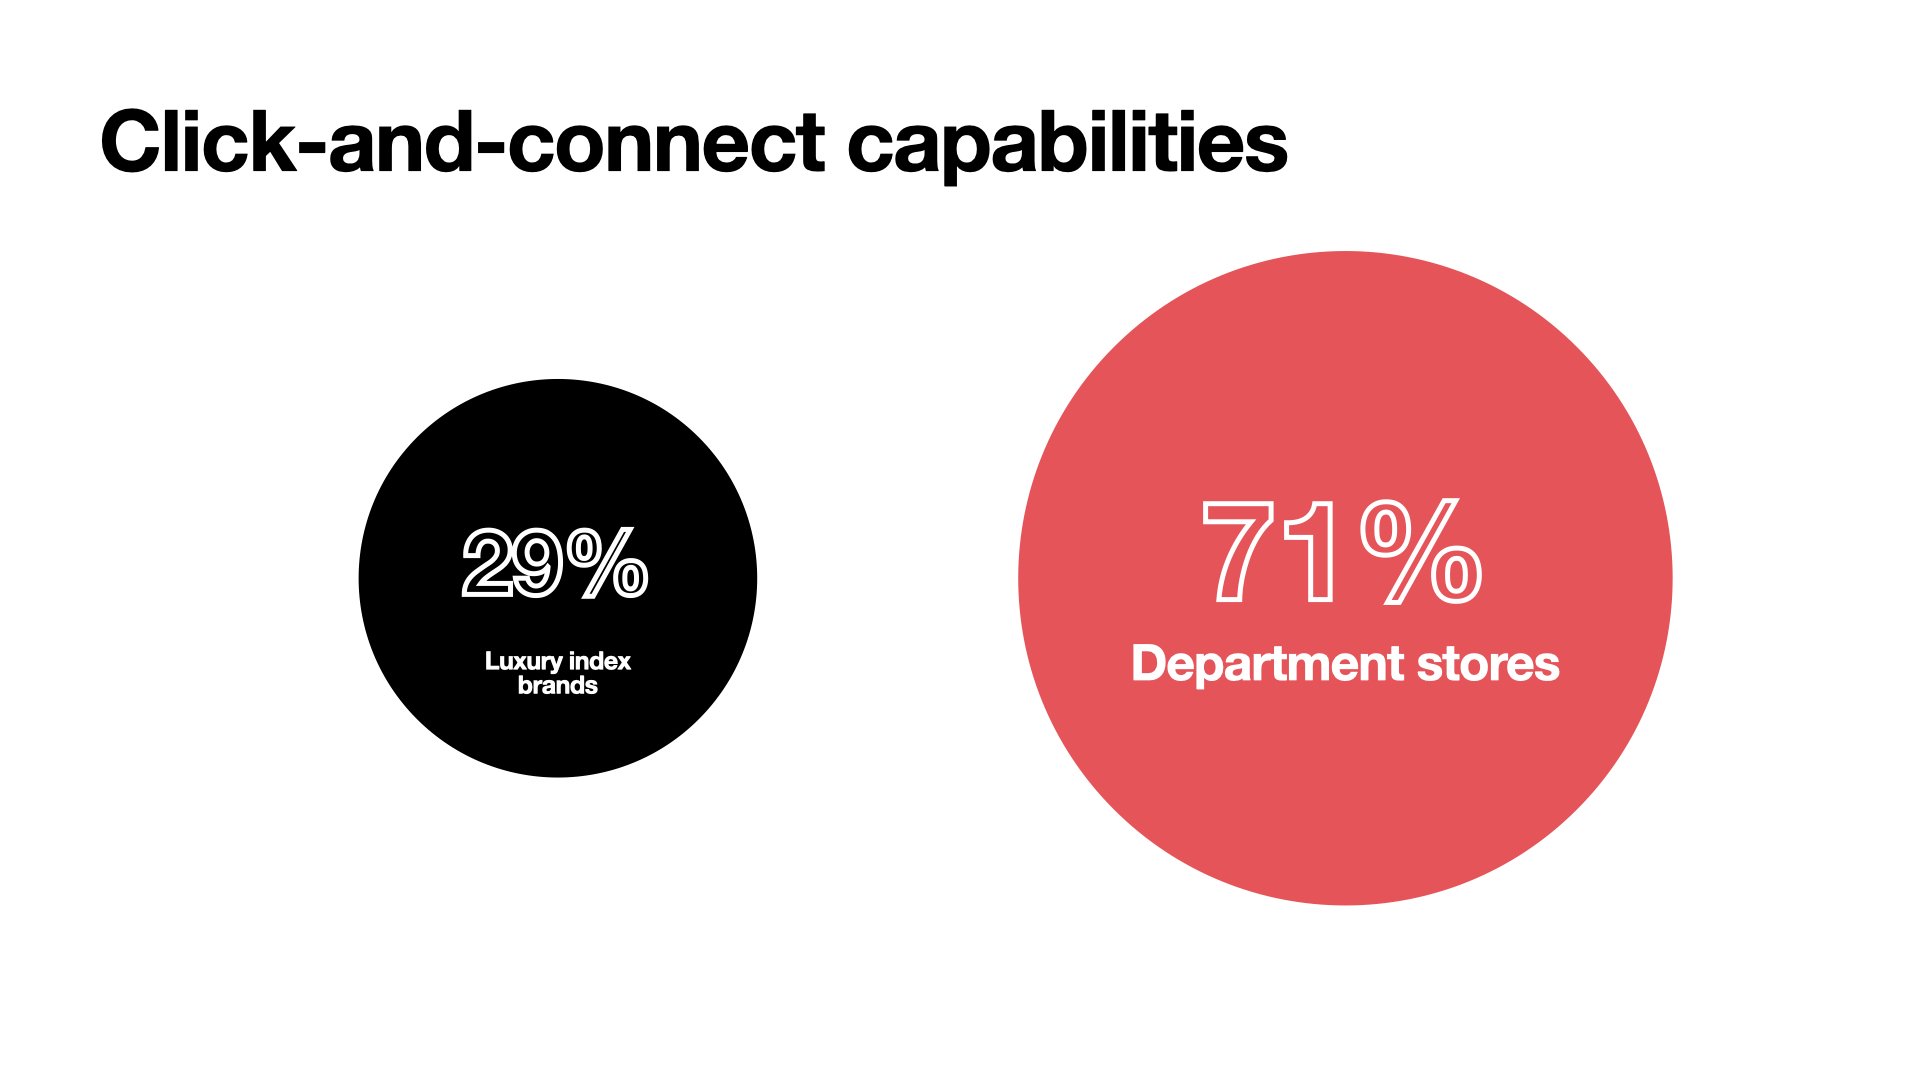 A luxury digital marketing agency's take on customer experience in 2021 (CX): Less than a third of luxury brands have click-and-connect capabilities compared to the 71% of department stores.